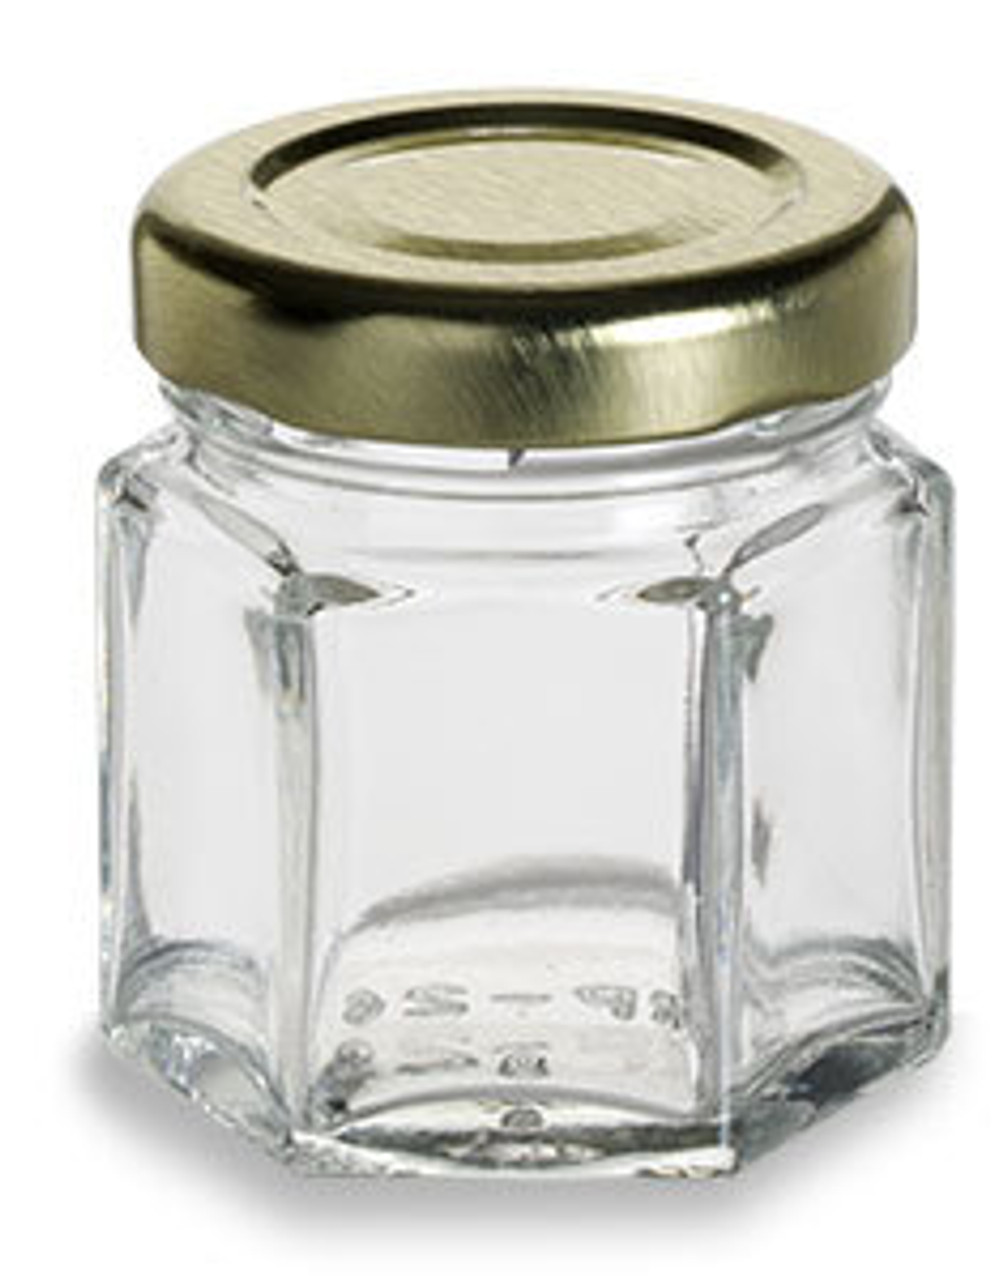 1.5 oz hexagon glass favor jar with gold lid.